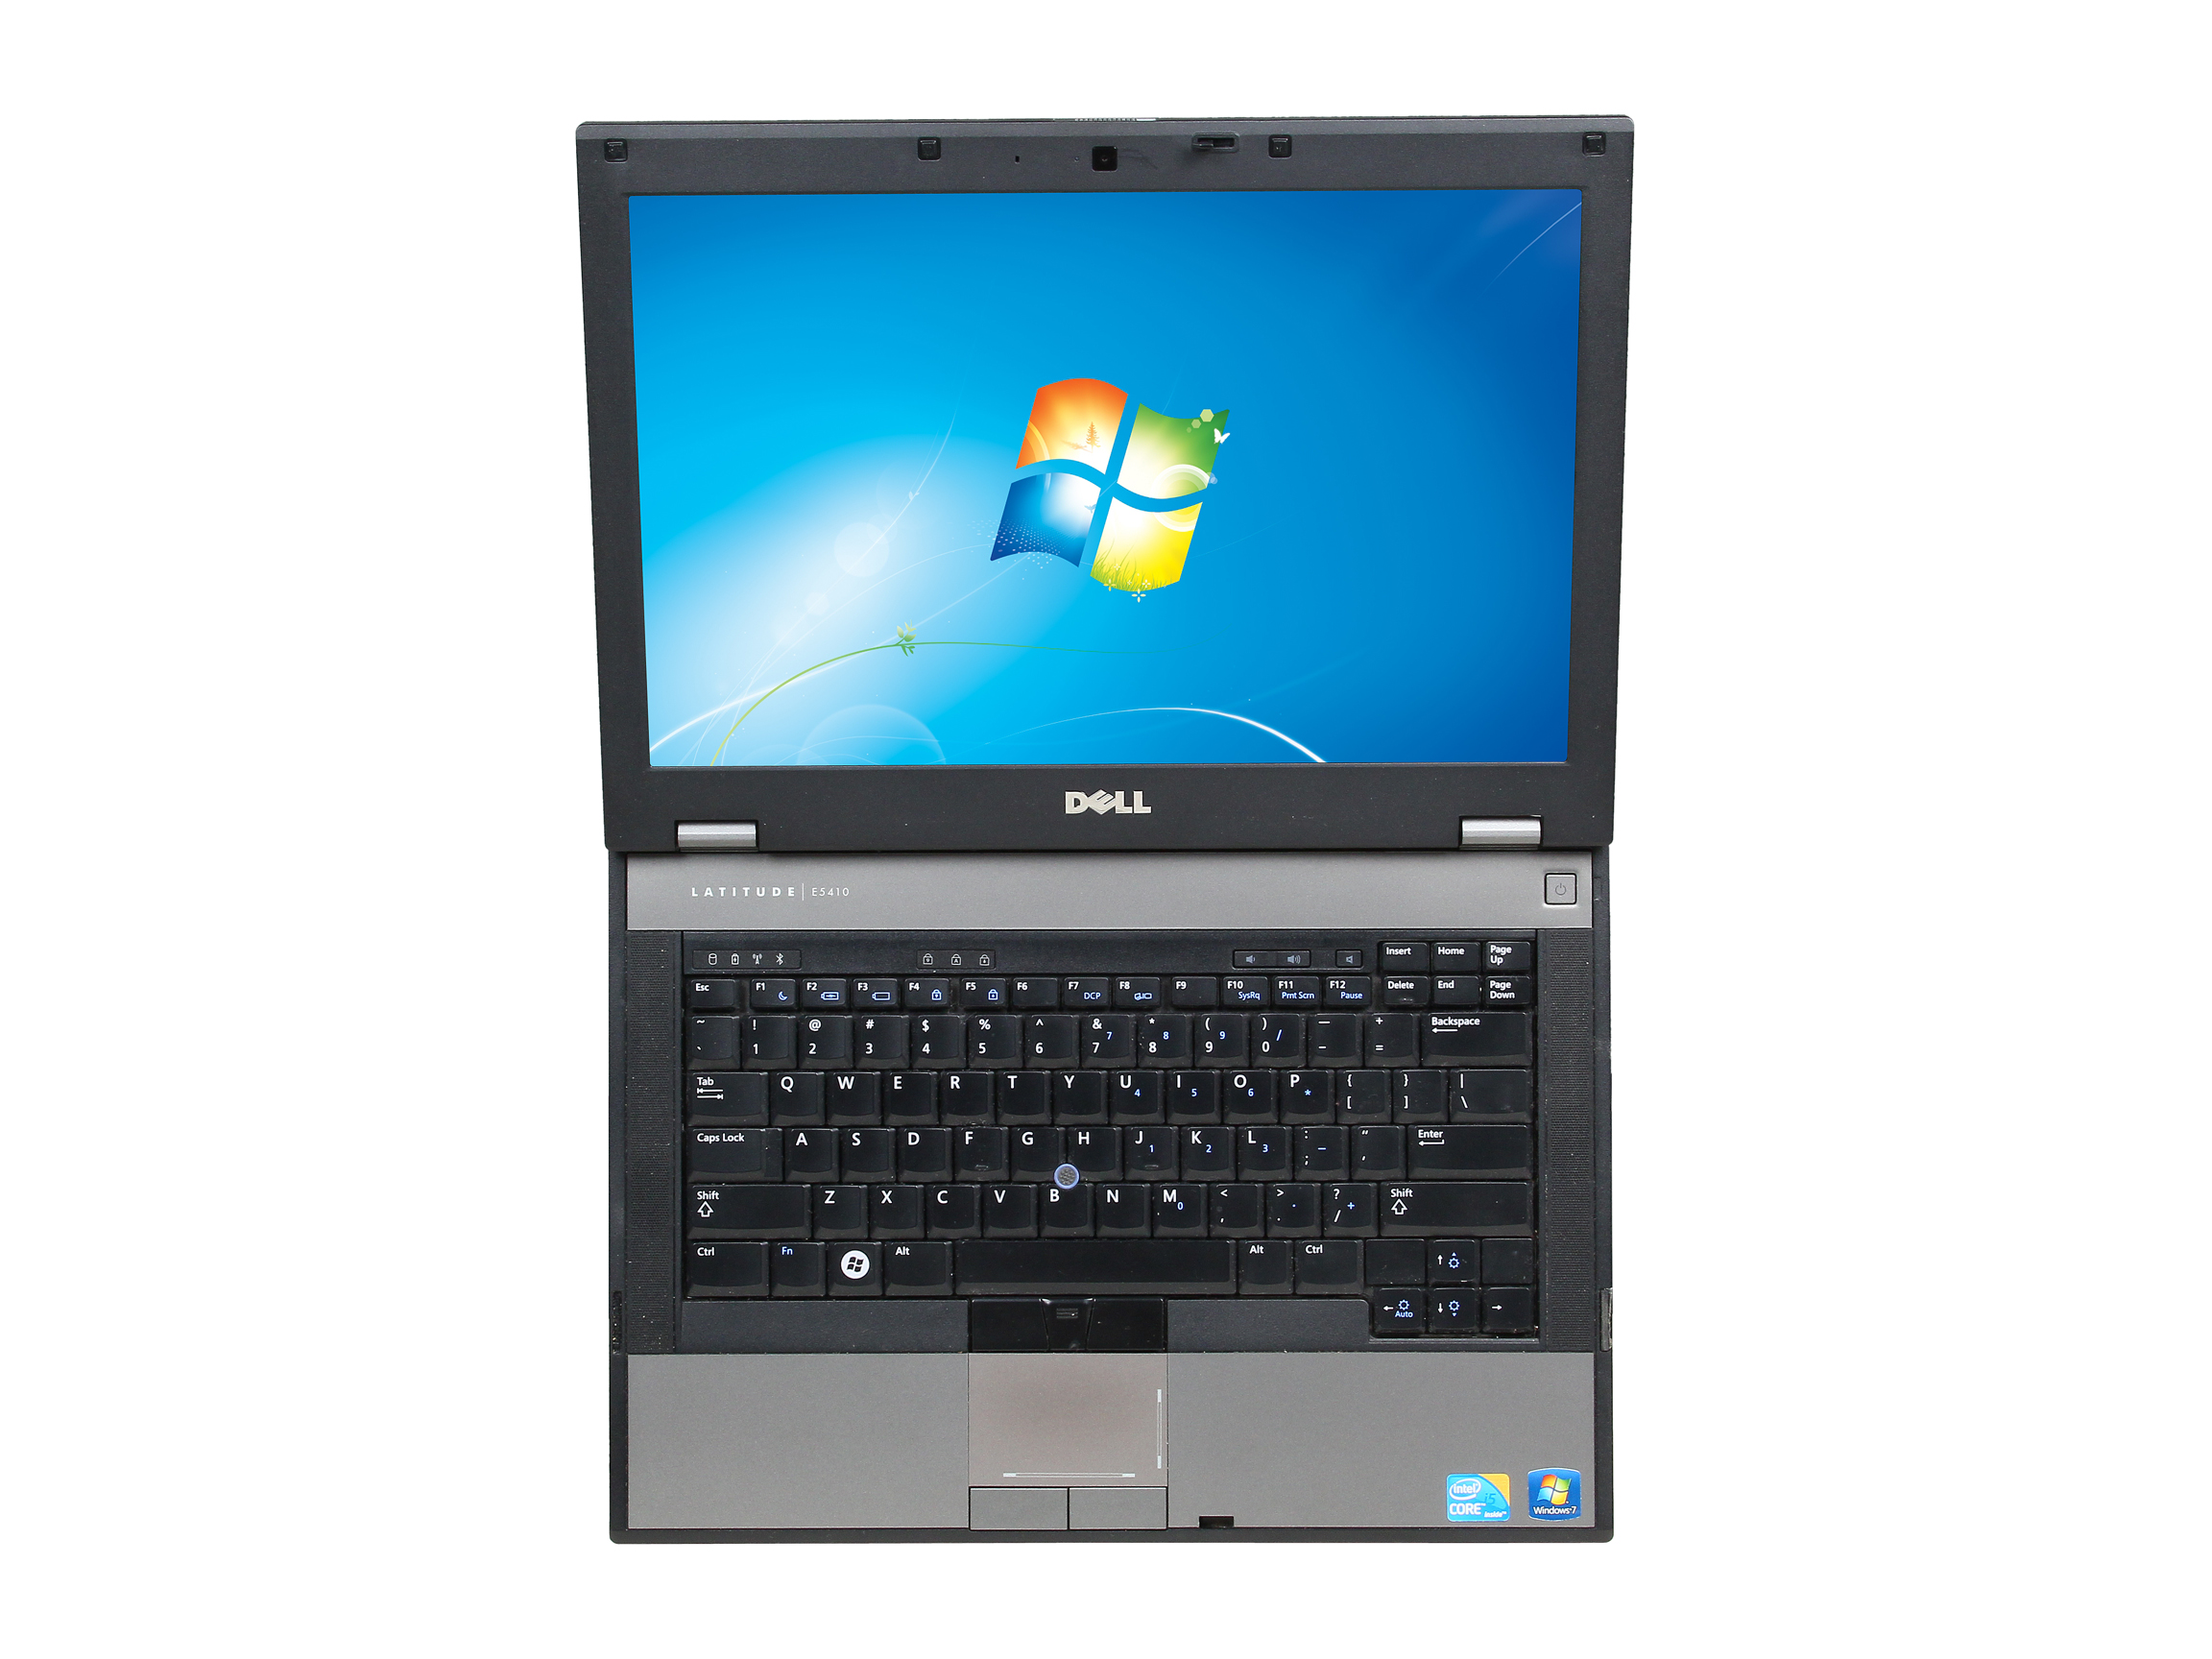 "Refurbished: DELL Latitude E5410 Notebook Intel Core i5 520M (2.40GHz) 4GB Memory 160GB HDD Intel HD Graphics 14.1"" Windows 7 Professional 64-Bit"